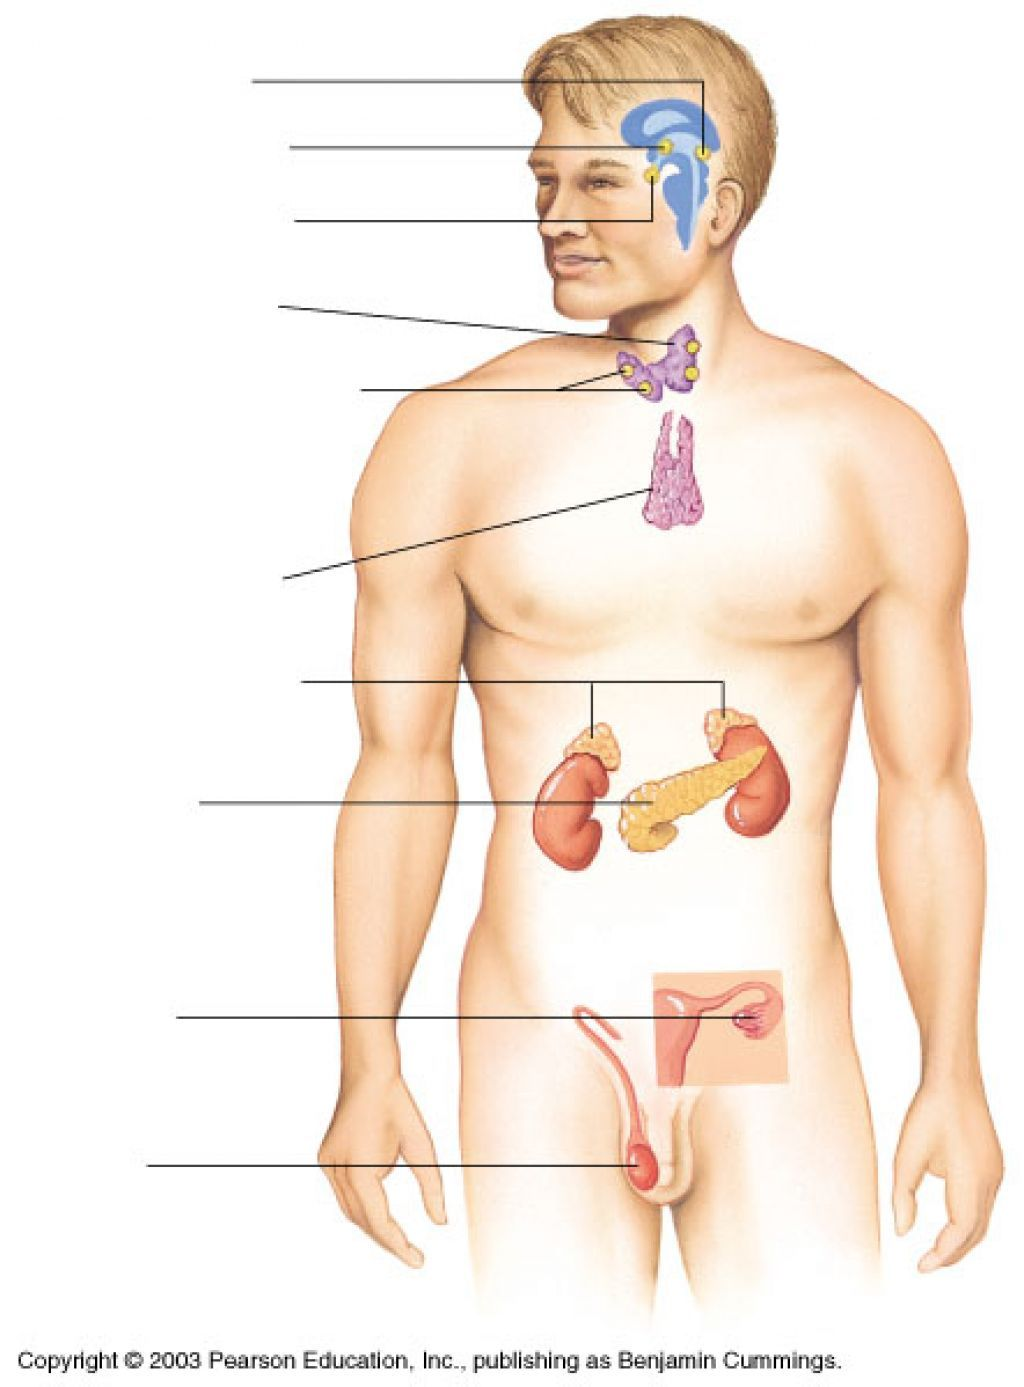 Endocrine system diagram unlabeled anatomy and physiology pinterest endocrine system diagram unlabeled ccuart Gallery